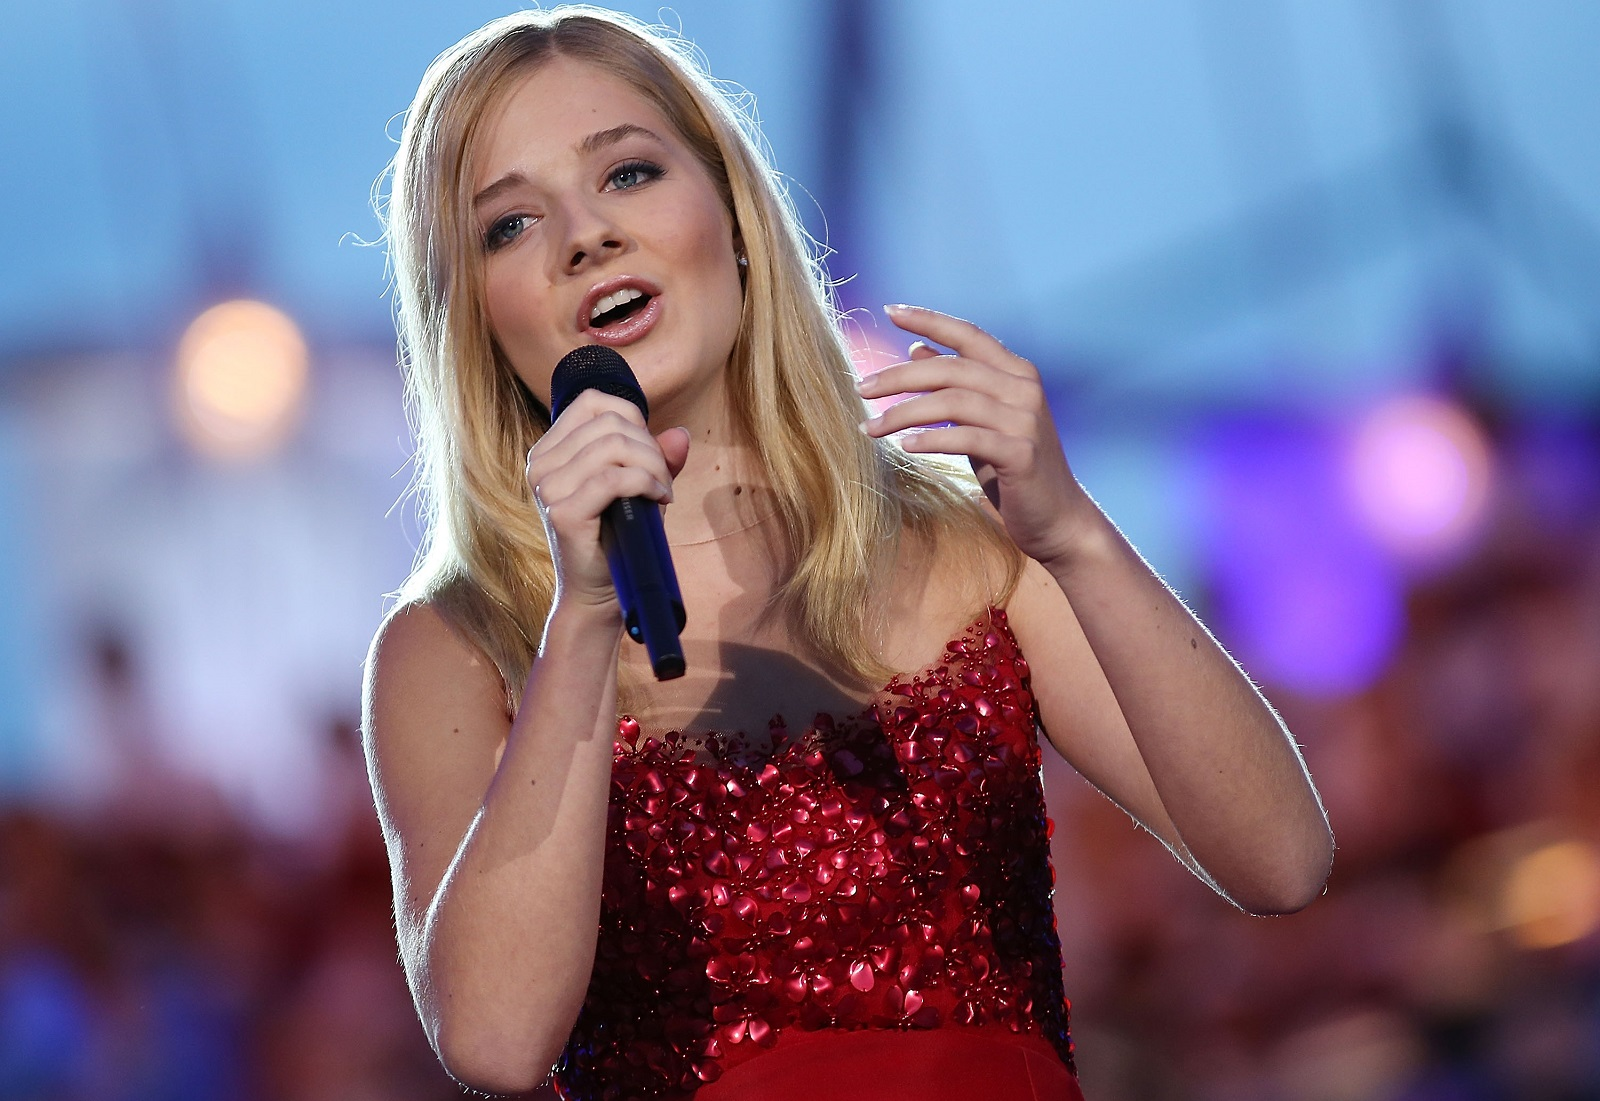 Jackie Evancho, pictured performing in Washington, DC in July, worked with Williamsville native and Trans-Siberian Orchestra founder Robert Kinkel on her recent Christmas album and upcoming original music. (Getty Images)